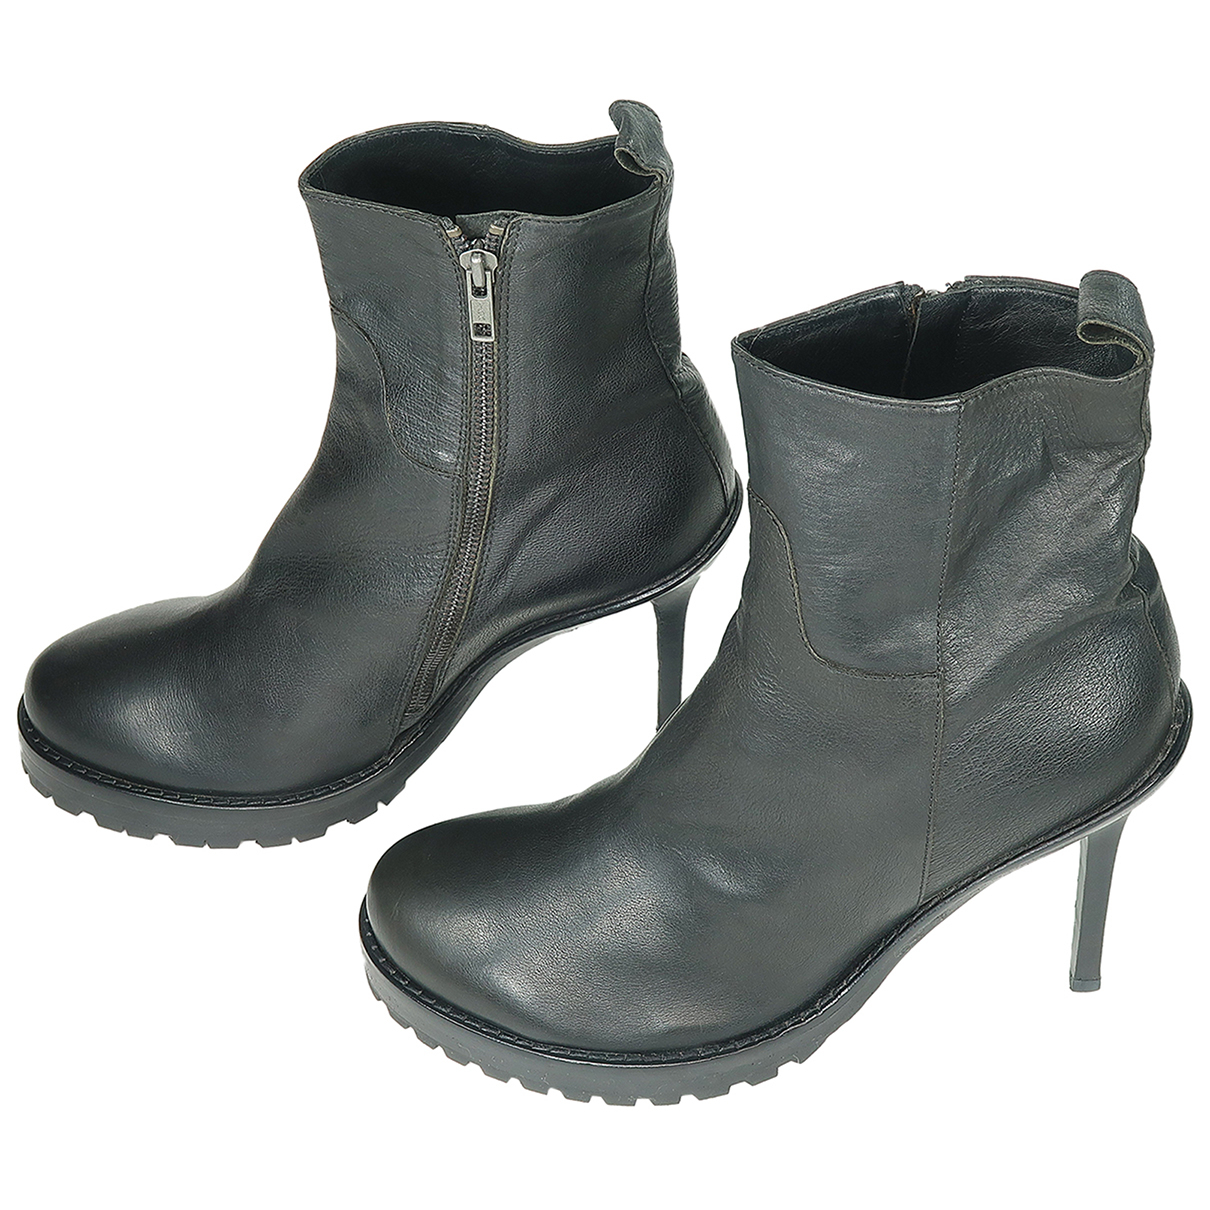 Ann Demeulemeester N Black Leather Ankle boots for Women 41 IT